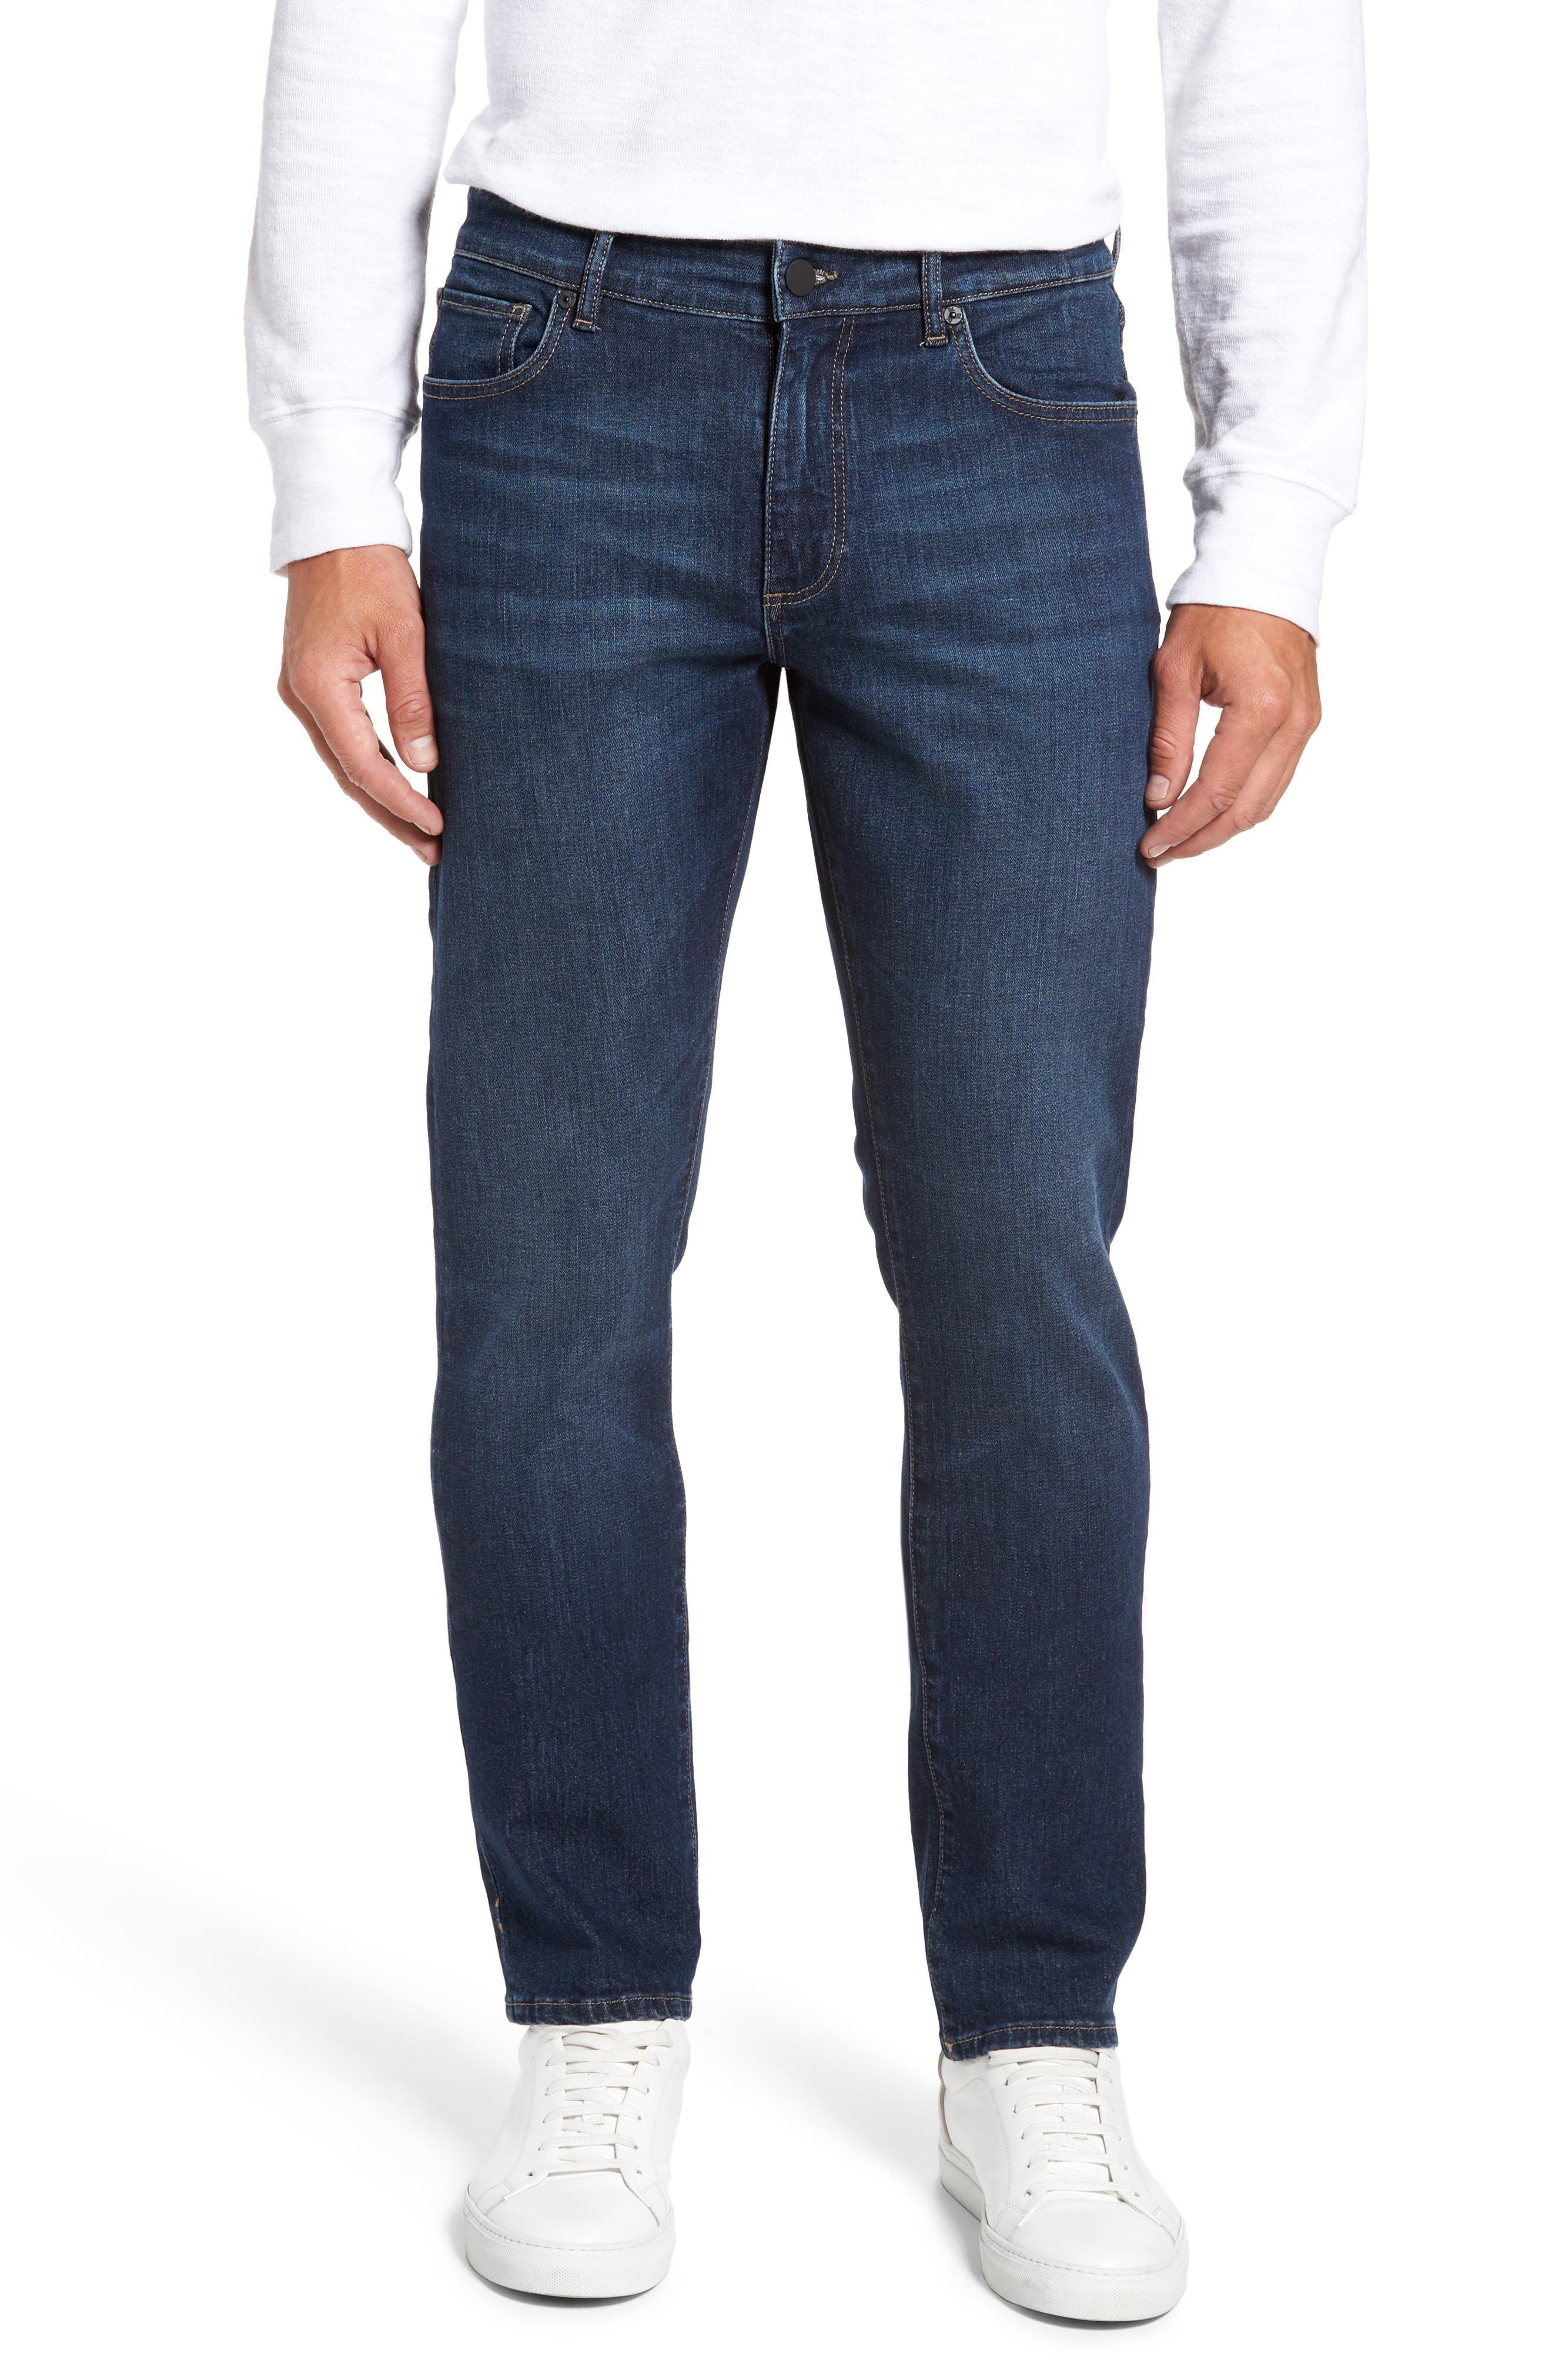 Russell Slim Straight Leg Jeans,                         Main,                         color, Marine